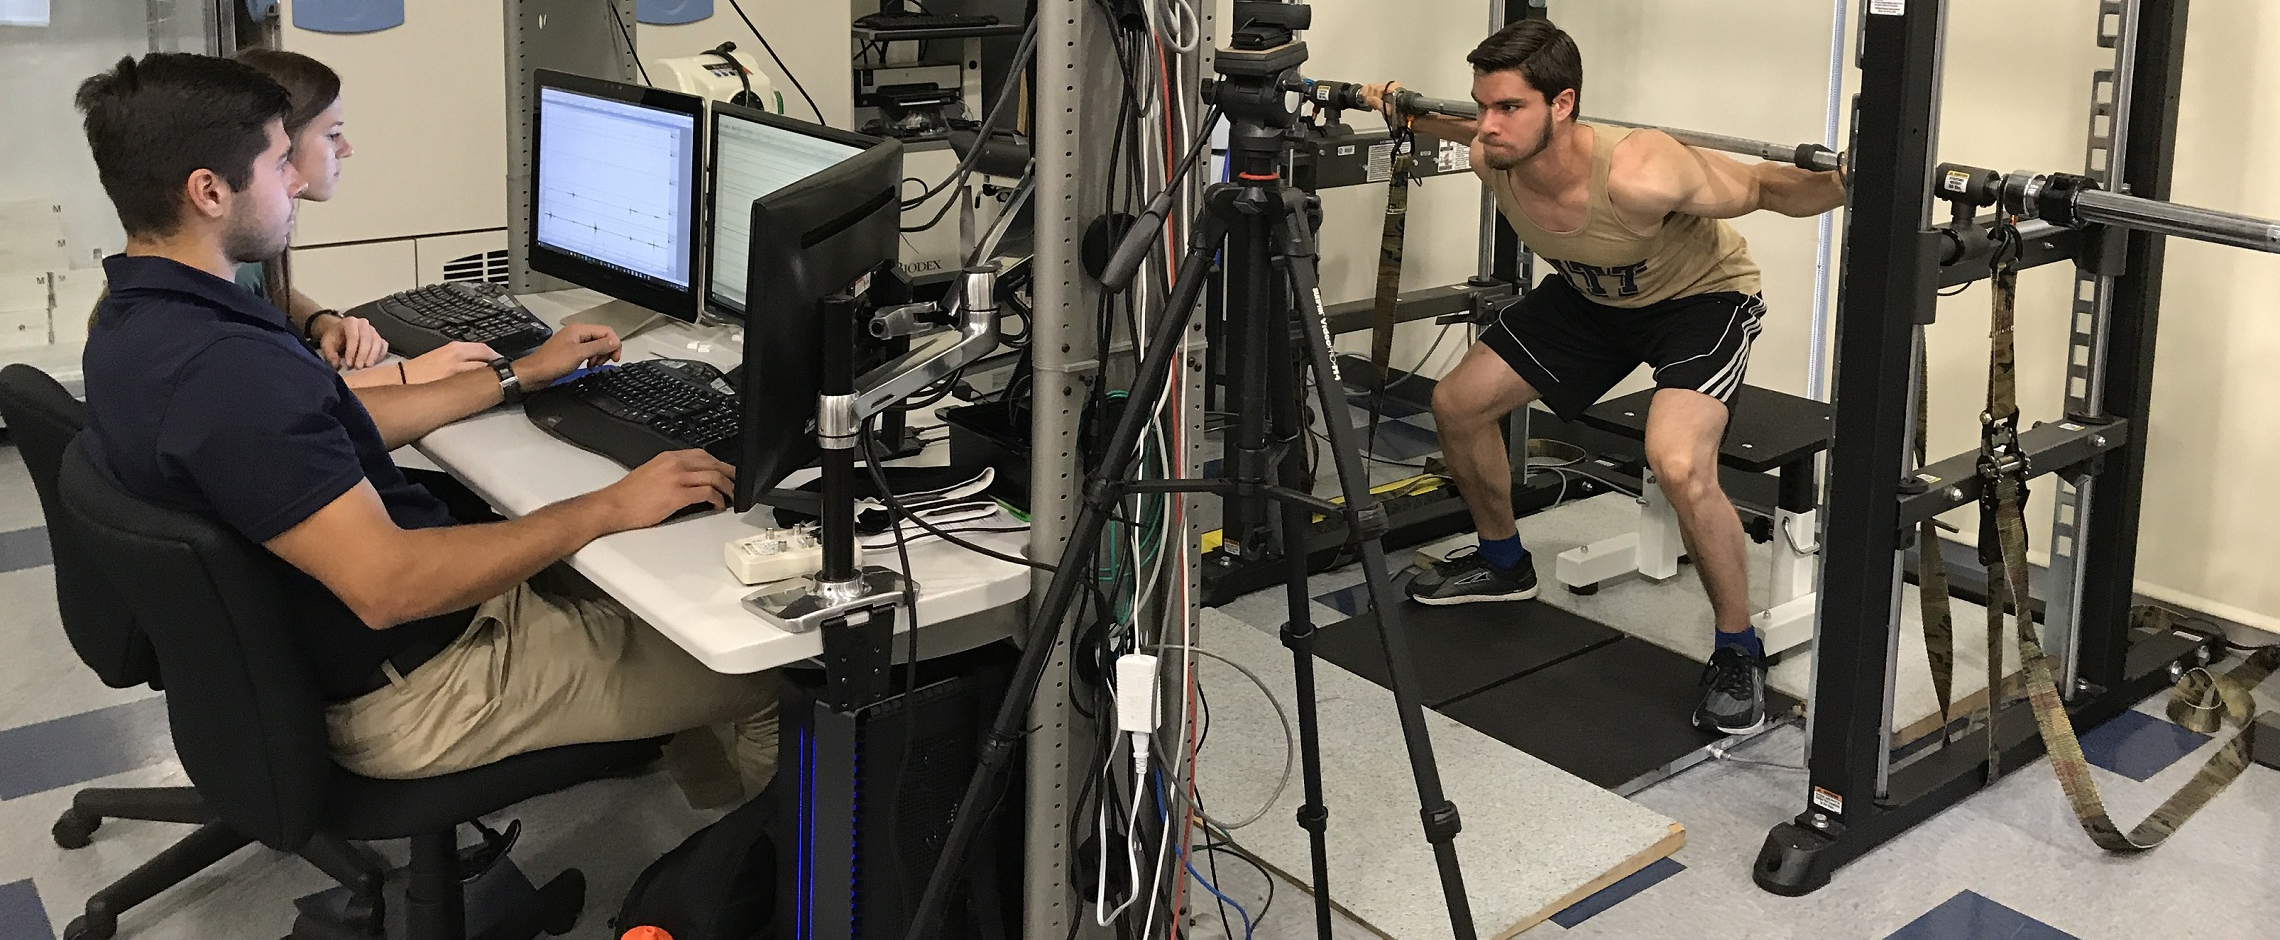 Researchers working in Neuromuscular Research Laboratory